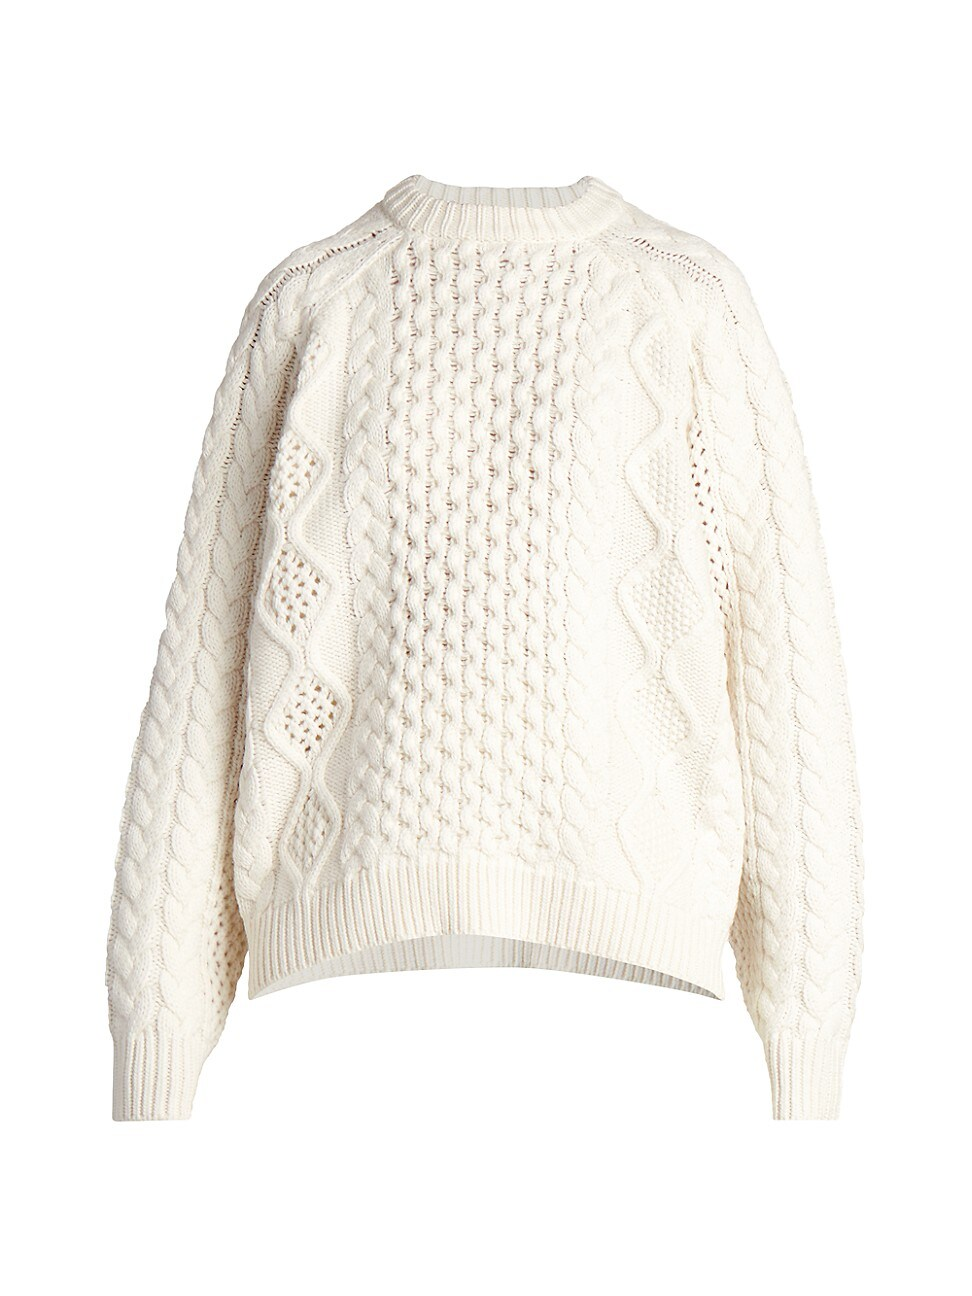 LOULOU STUDIO WOMEN'S CIPRIANU CABLE KNIT WOOL & CASHMERE SWEATER - IVORY - SIZE LARGE